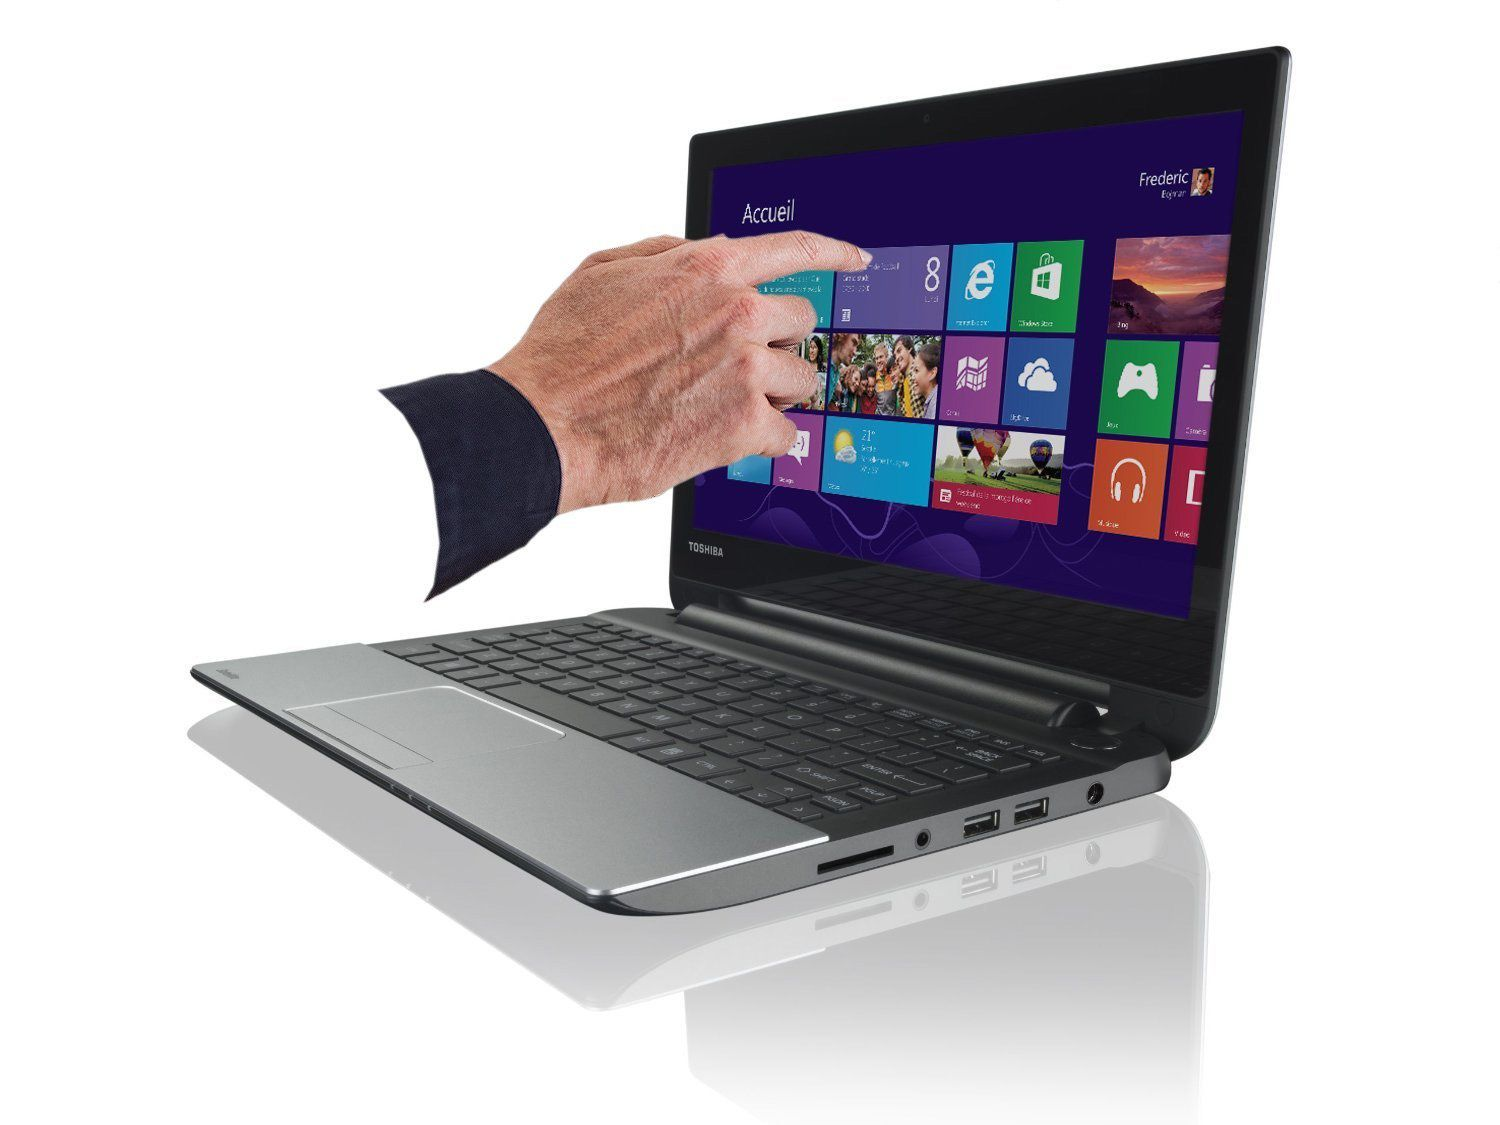 Vente flash ordinateur portable tactile toshiba satellite 11 6 29 46 - Ordinateur vente flash ...